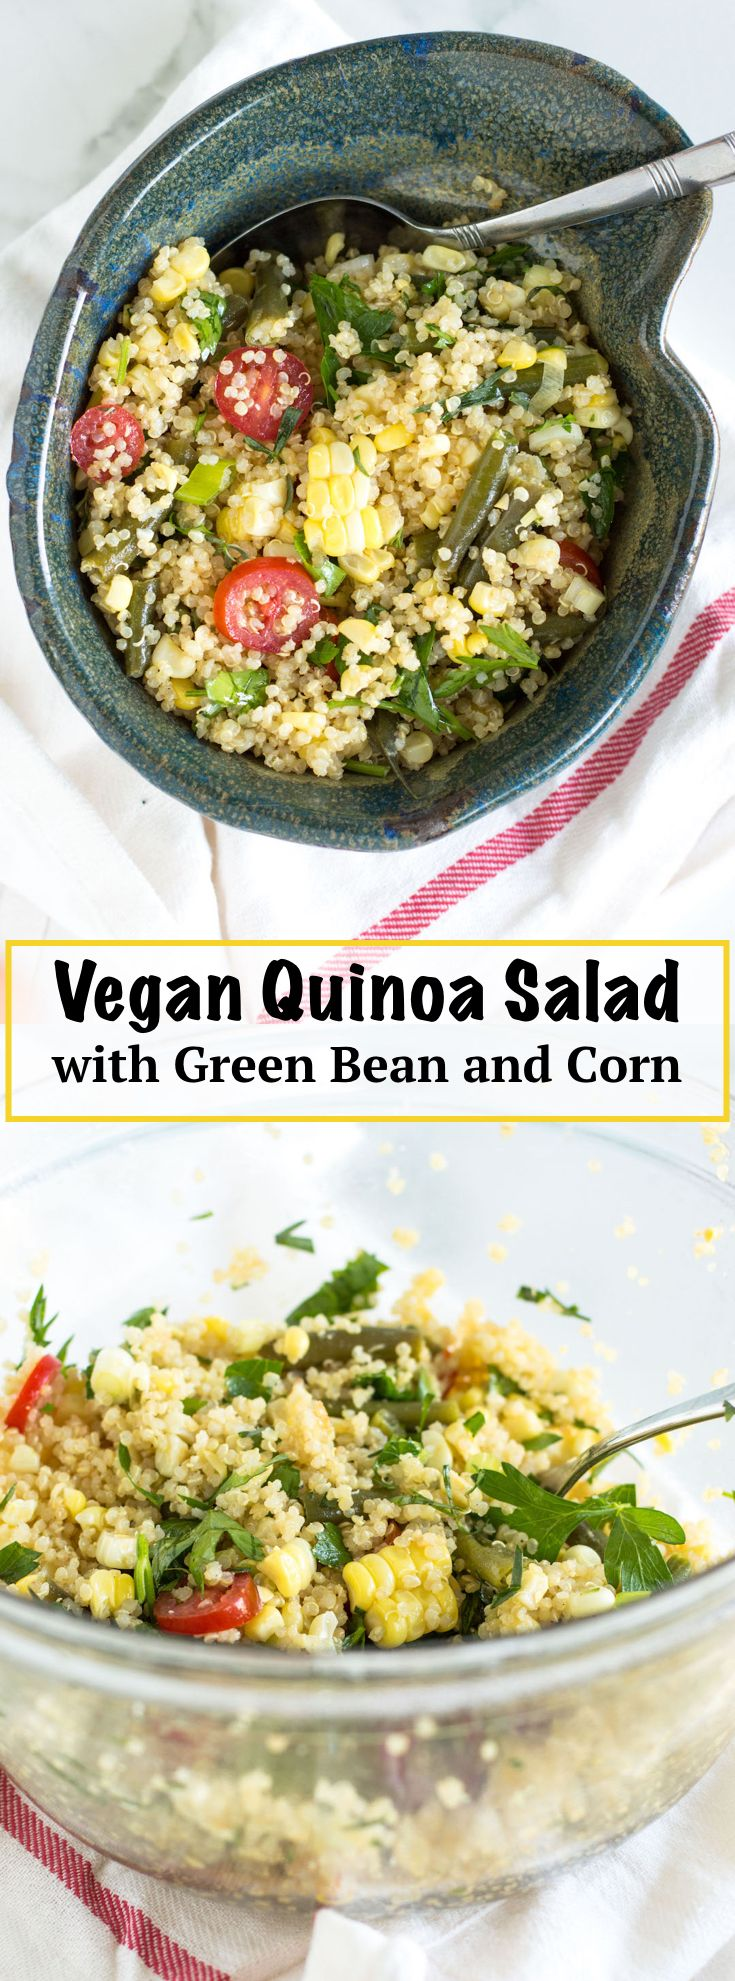 Summery Vegan Quinoa Salad with Green Beans and Corn